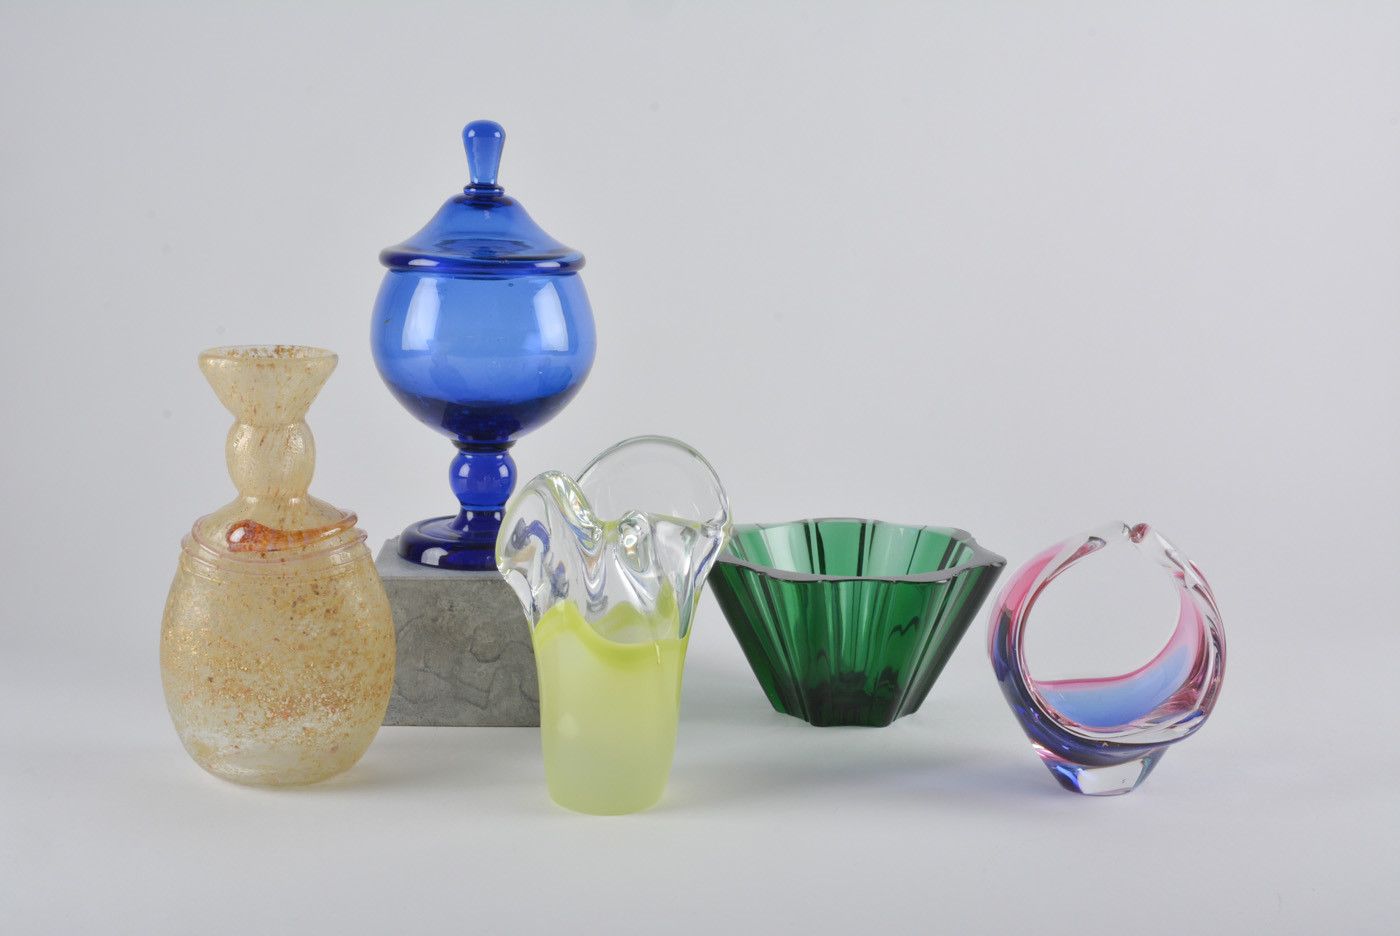 orrefors glass vase of simon gate valuations browse auction results mearto com for lots of glass 5 parts eg cost and flygsfors 5